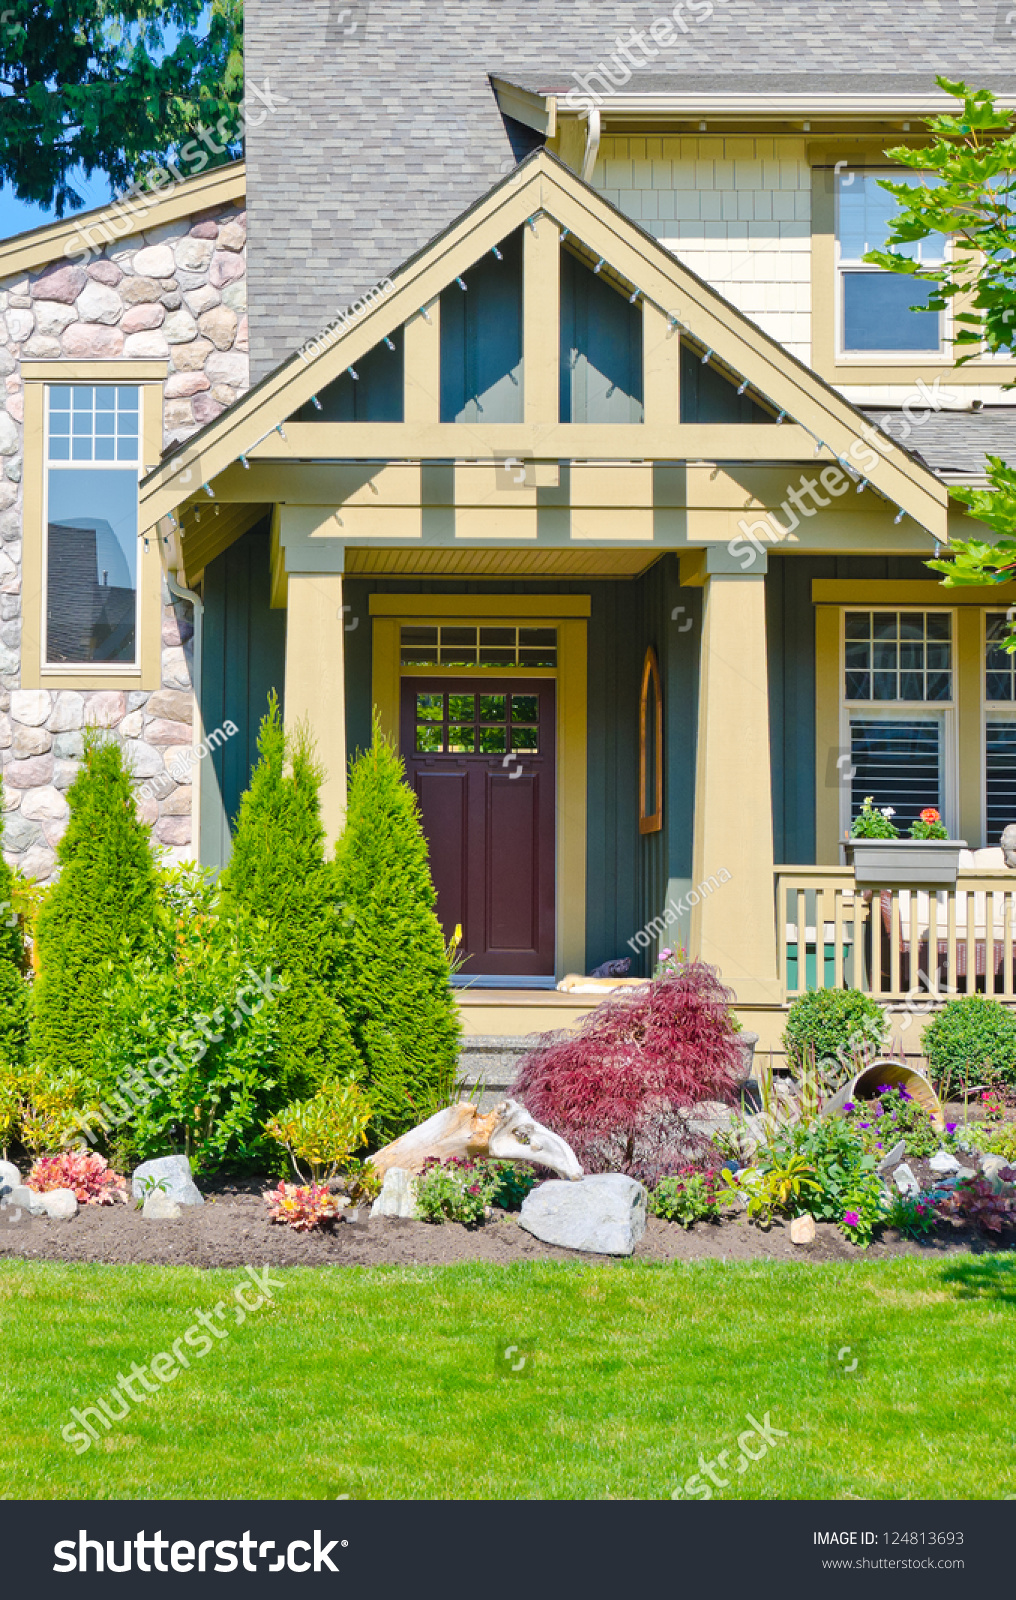 House Entrance Nicely Landscaped Front Yard Stock Photo 124813693 ...